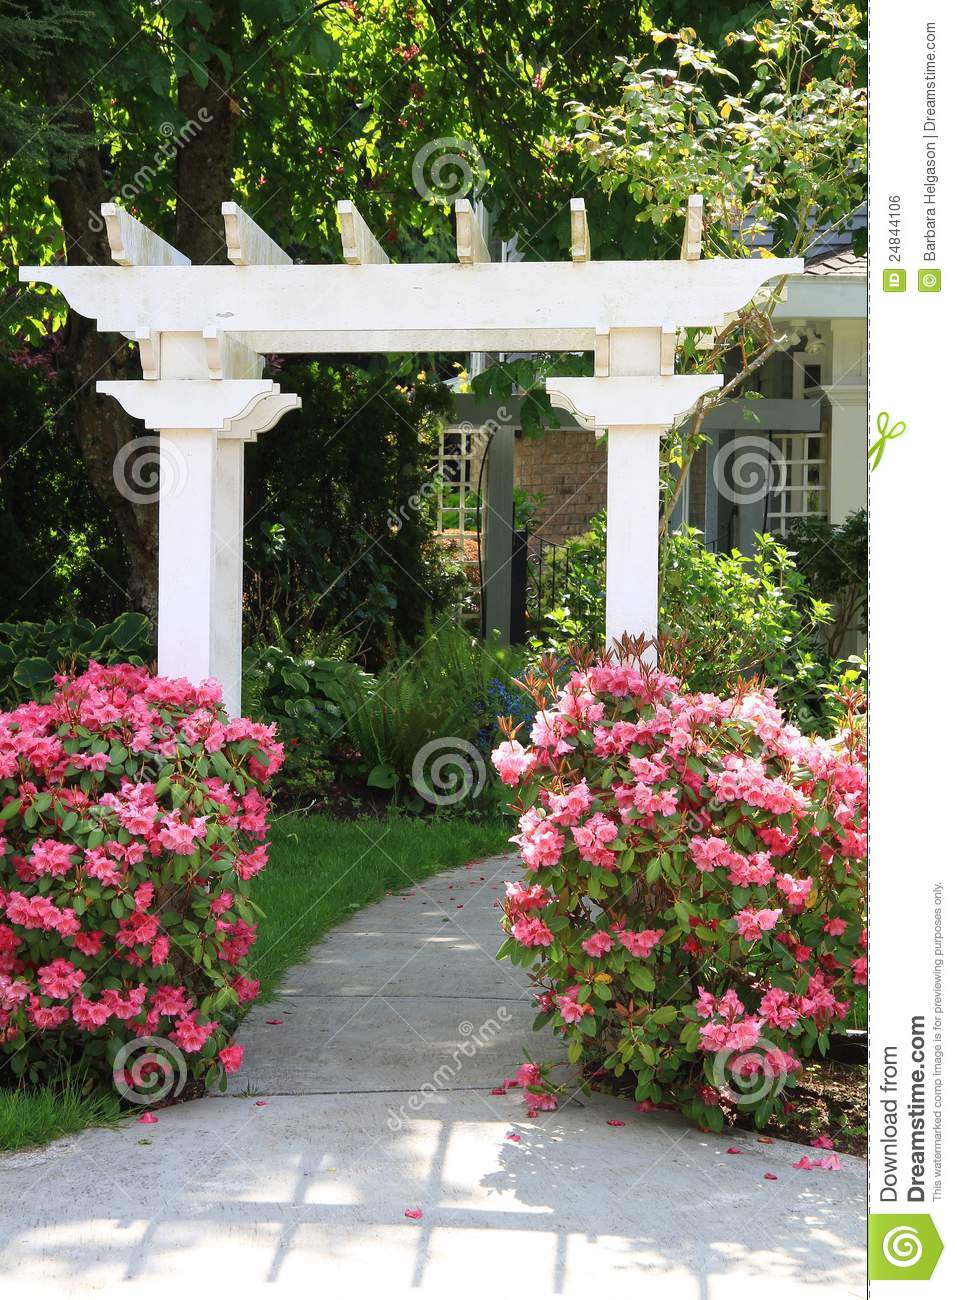 Garden Arbor And Pink Flowers Royalty Free Stock Image Image